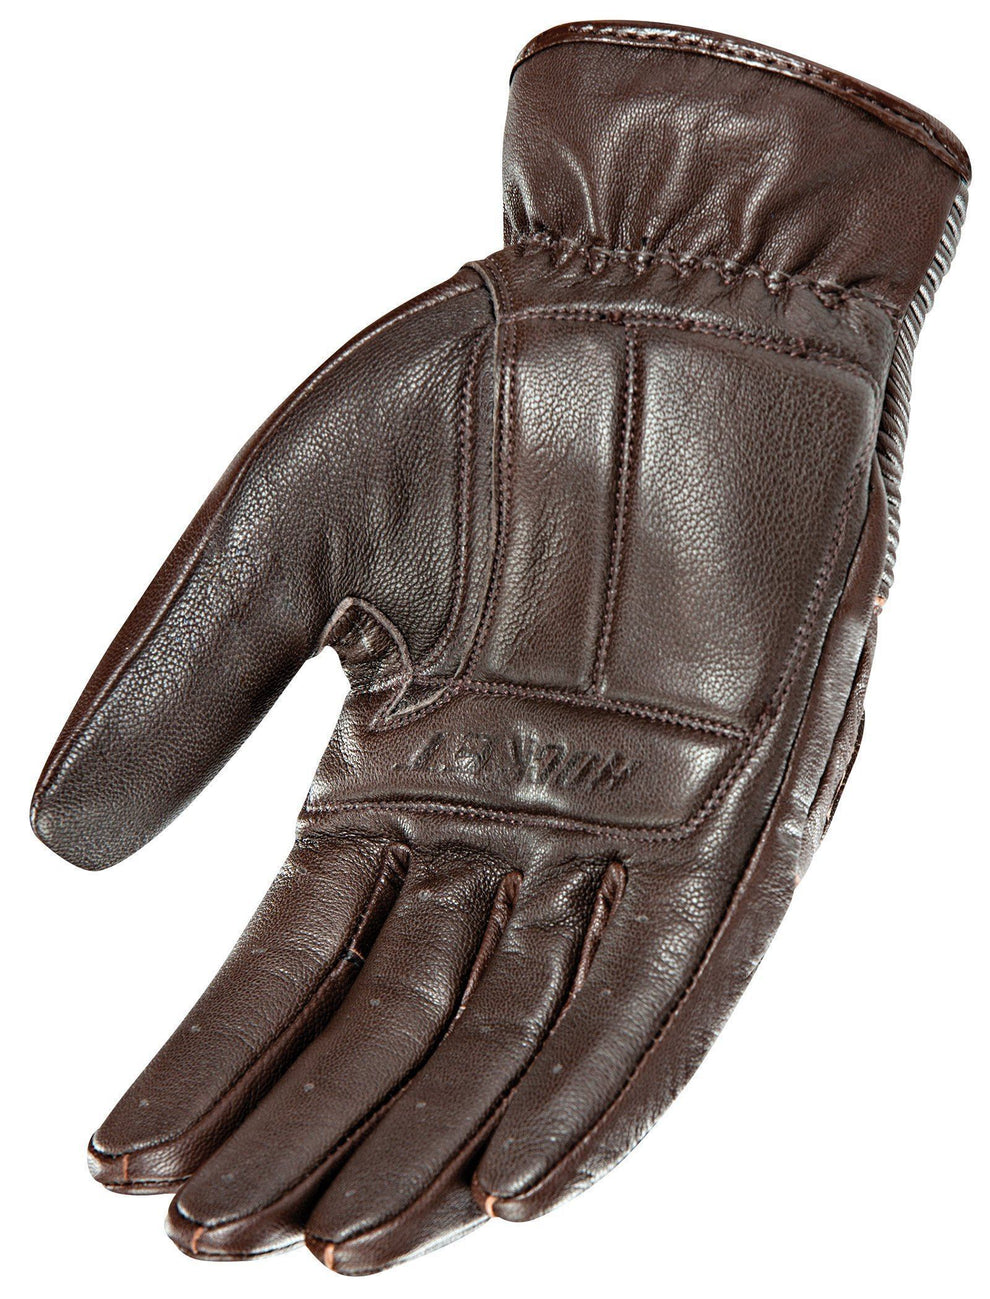 Joe Rocket Cafe Racer Men's Brown Leather Gloves